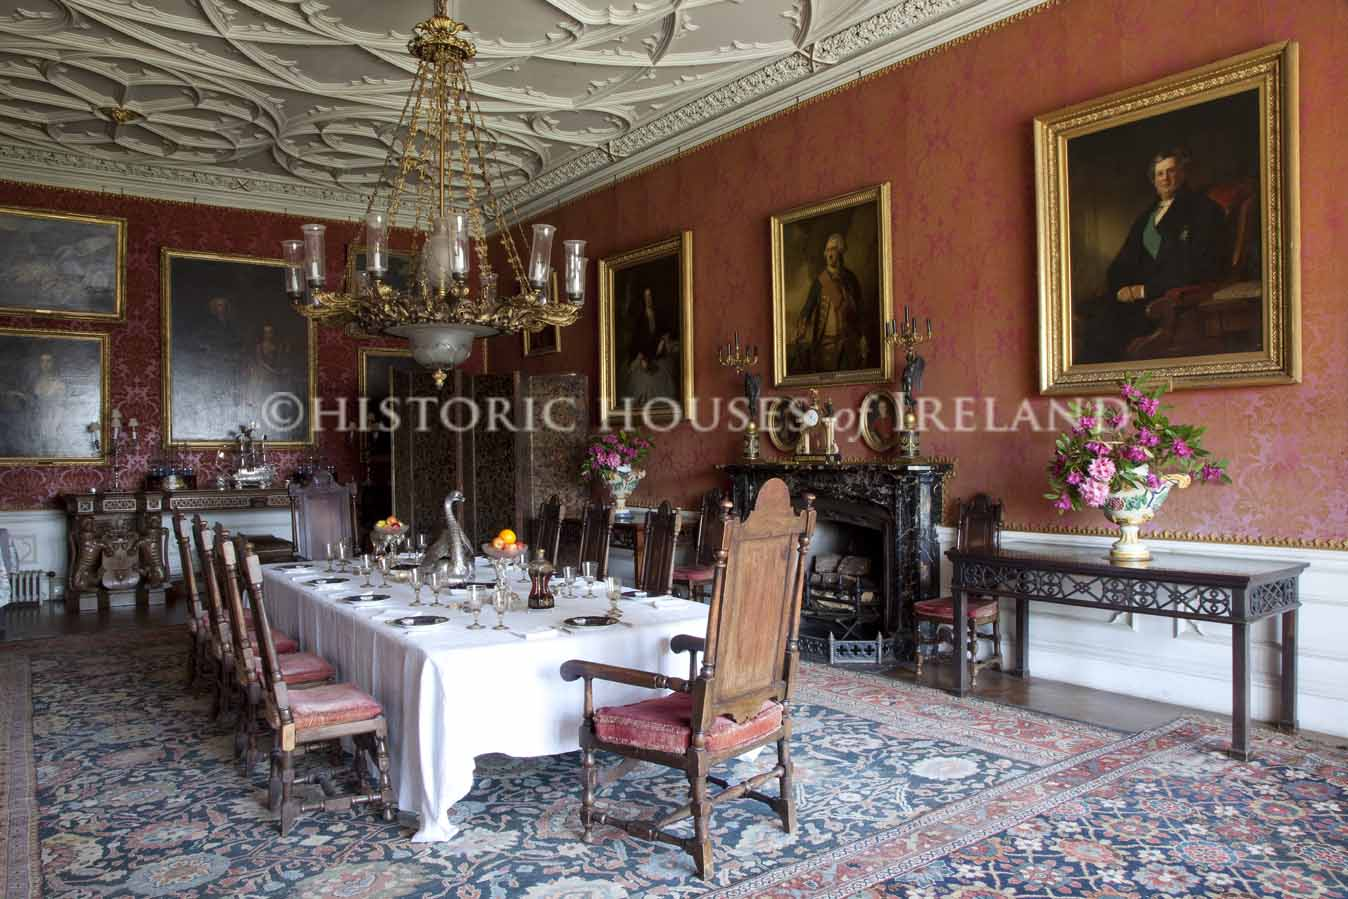 The great dining room at Birr Castle, overlooked by a portrait of the astronomer 3rd Earl.